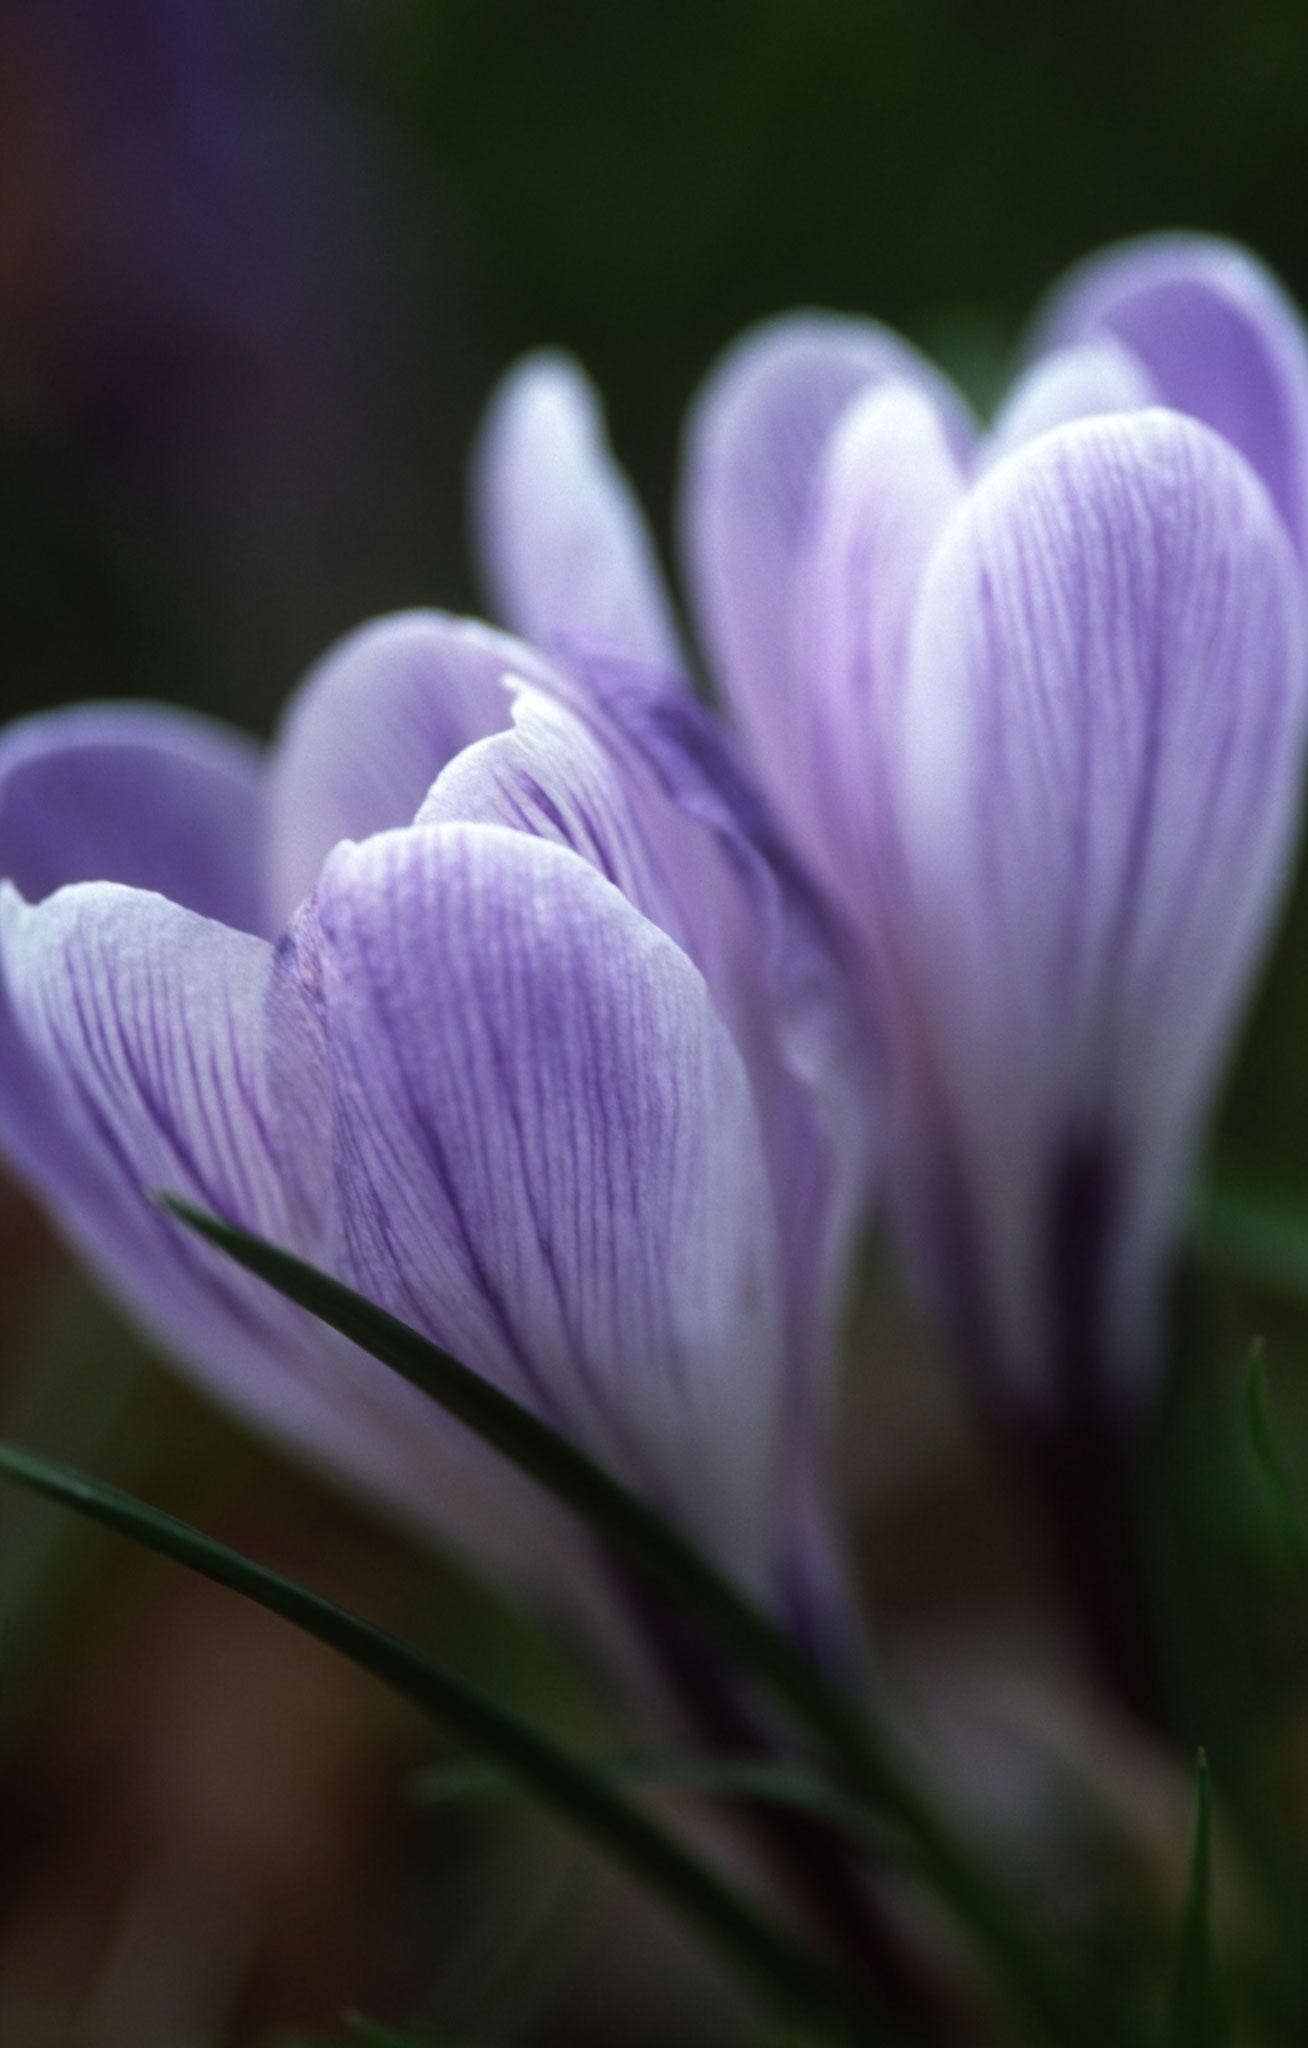 Crocus 'Vanguard' is bigger than most of the early-flowering crocus, but not as bossy as the large Dutch crocus that flower in March